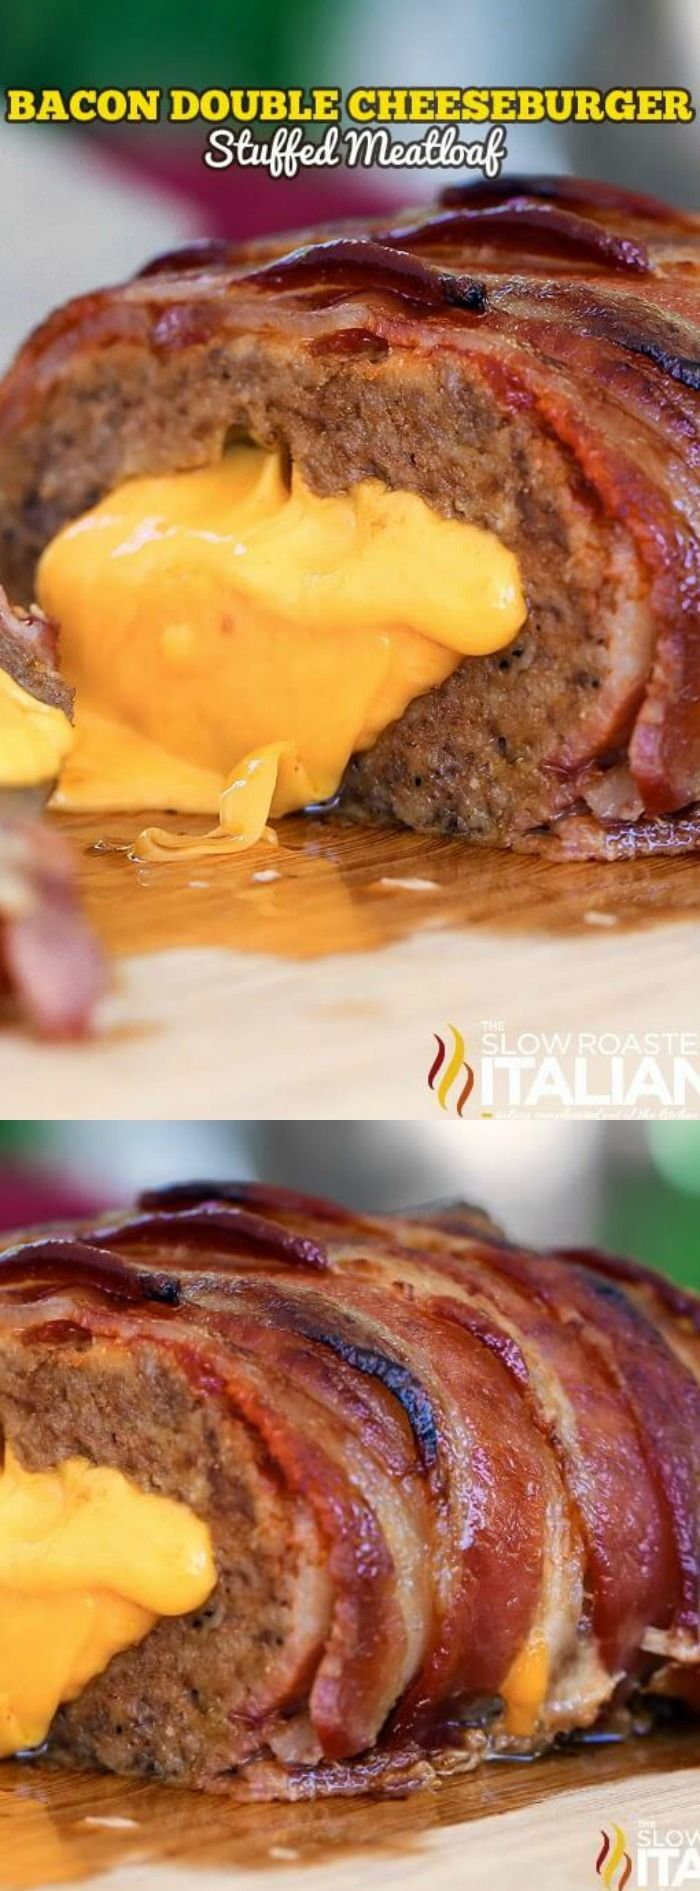 This AMAZING Bacon Double Cheeseburger Stuffed Meatloaf recipe from The Slow Roasted Italian is BURSTING with flavors! It gets stuffed with cheese and covered in a delicious brown sugar ketchup glaze that will make your mouth water!